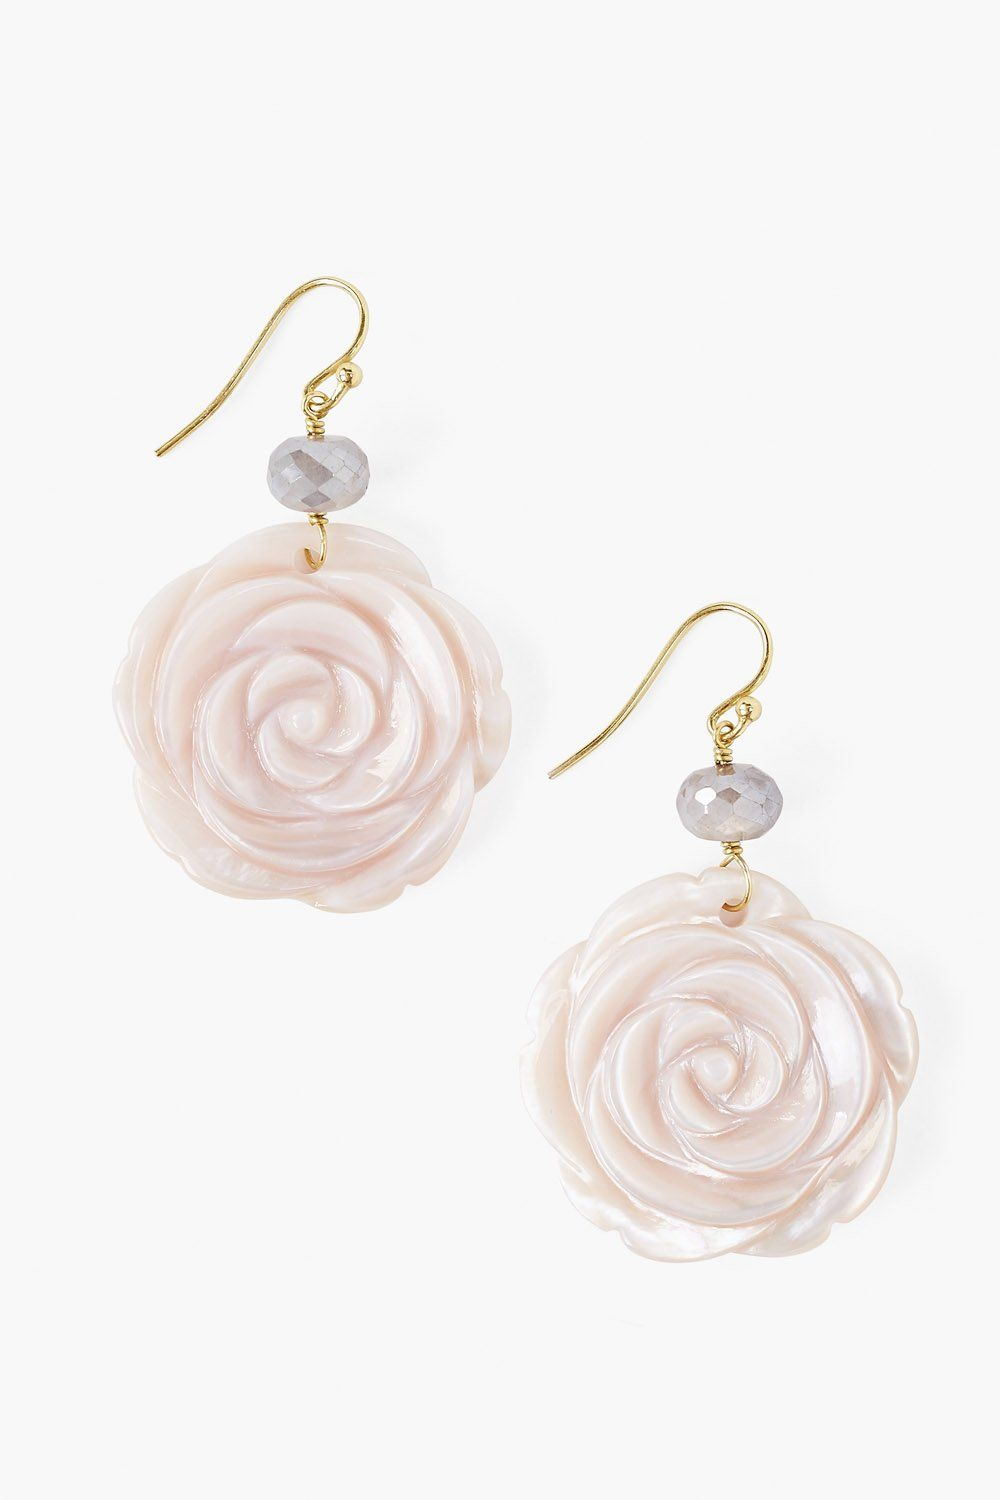 Carved Mother of Pearl Flower Earring